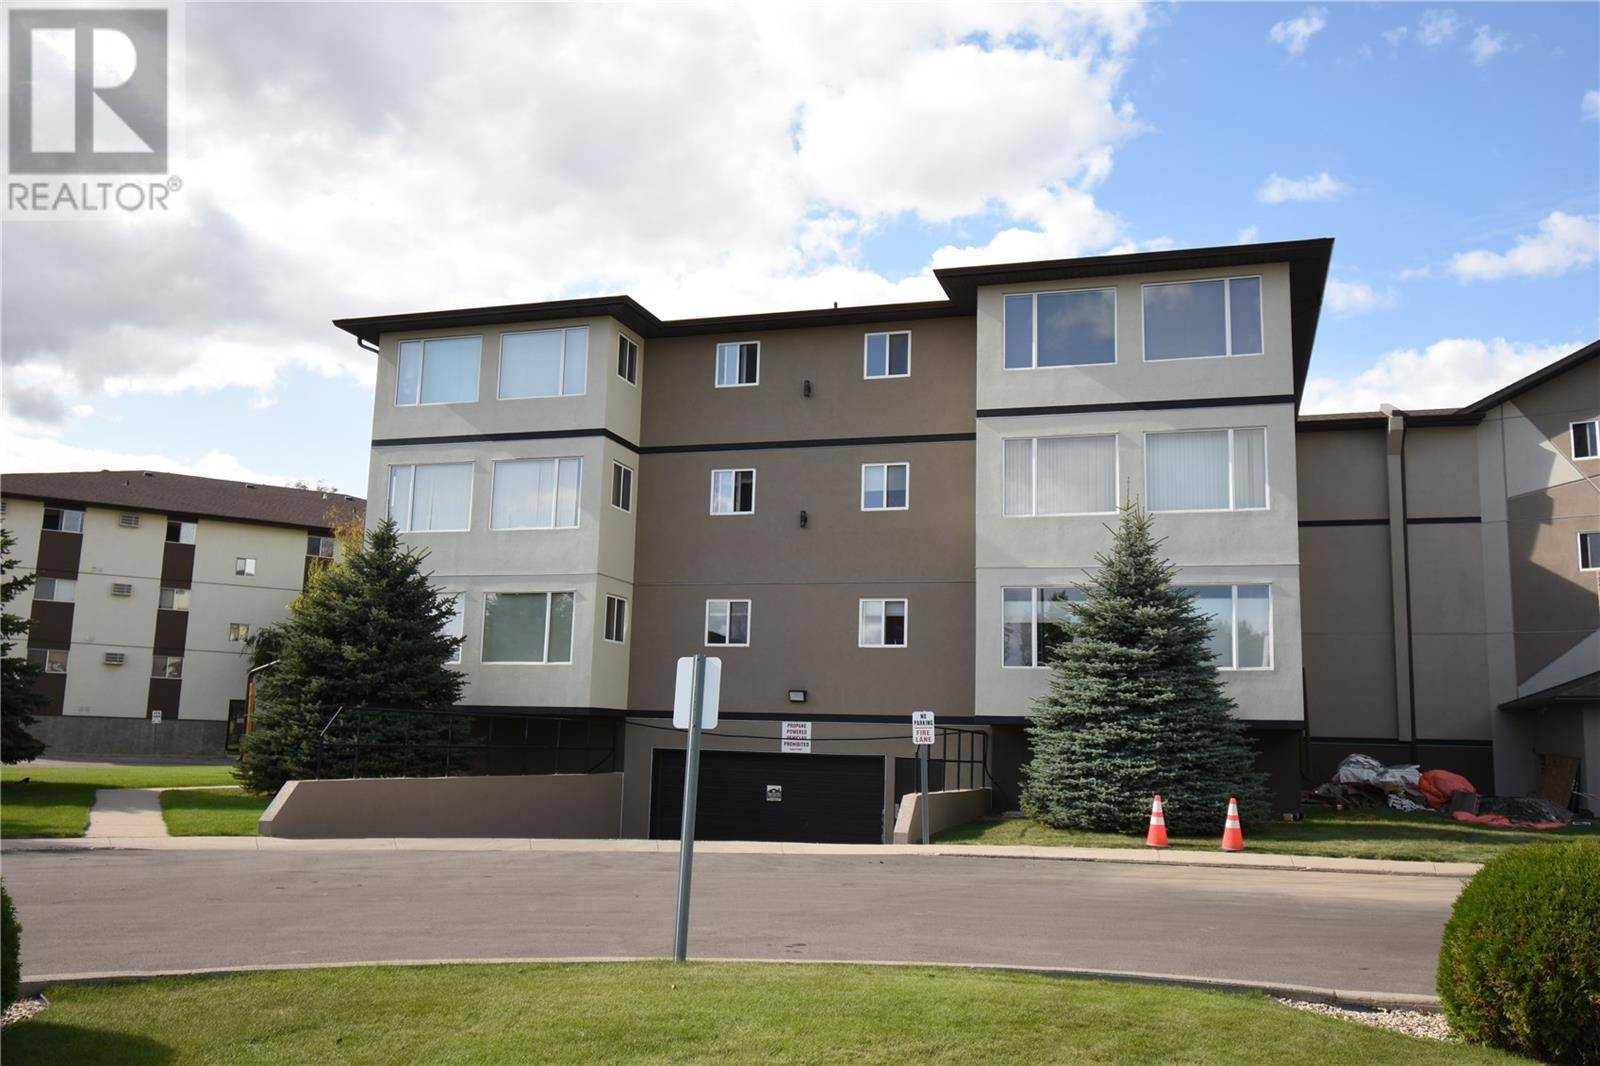 Condo for sale at 115 Keevil Cres Unit 203 Saskatoon Saskatchewan - MLS: SK783646